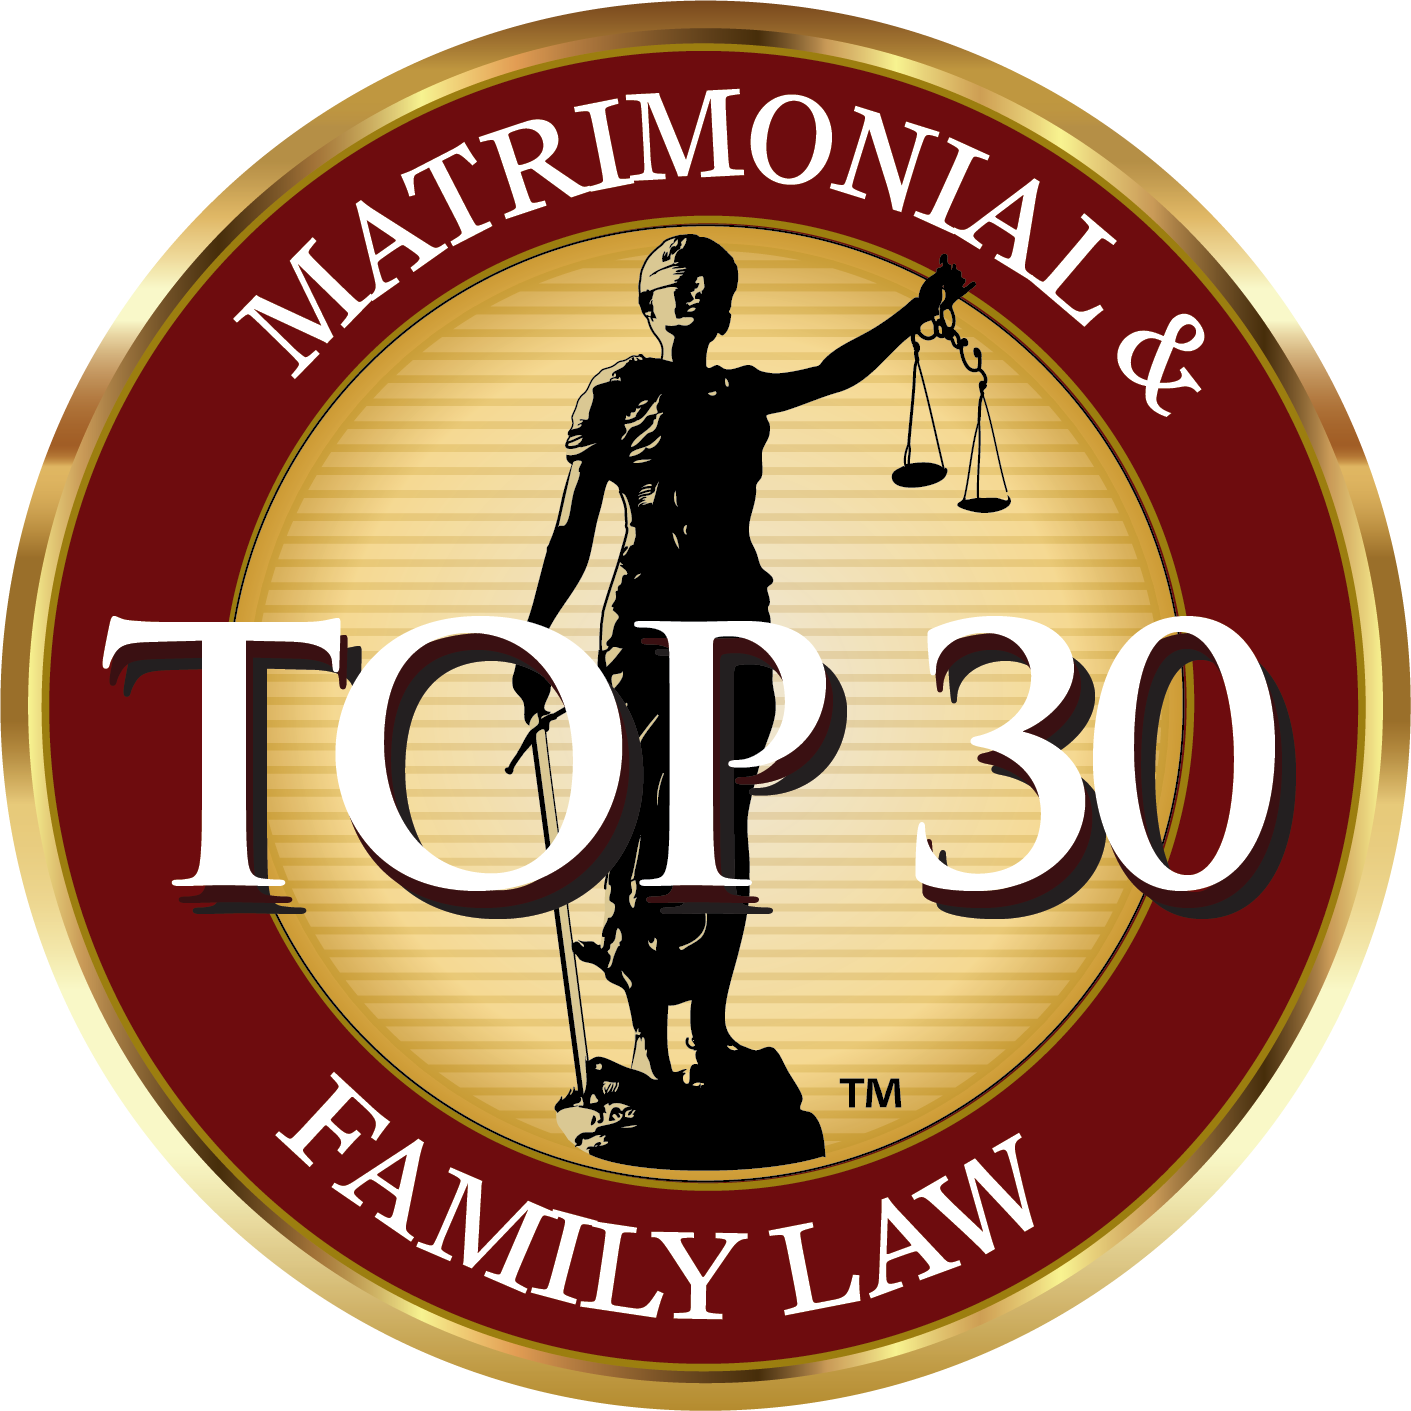 The National Advocates Top 30 Logo